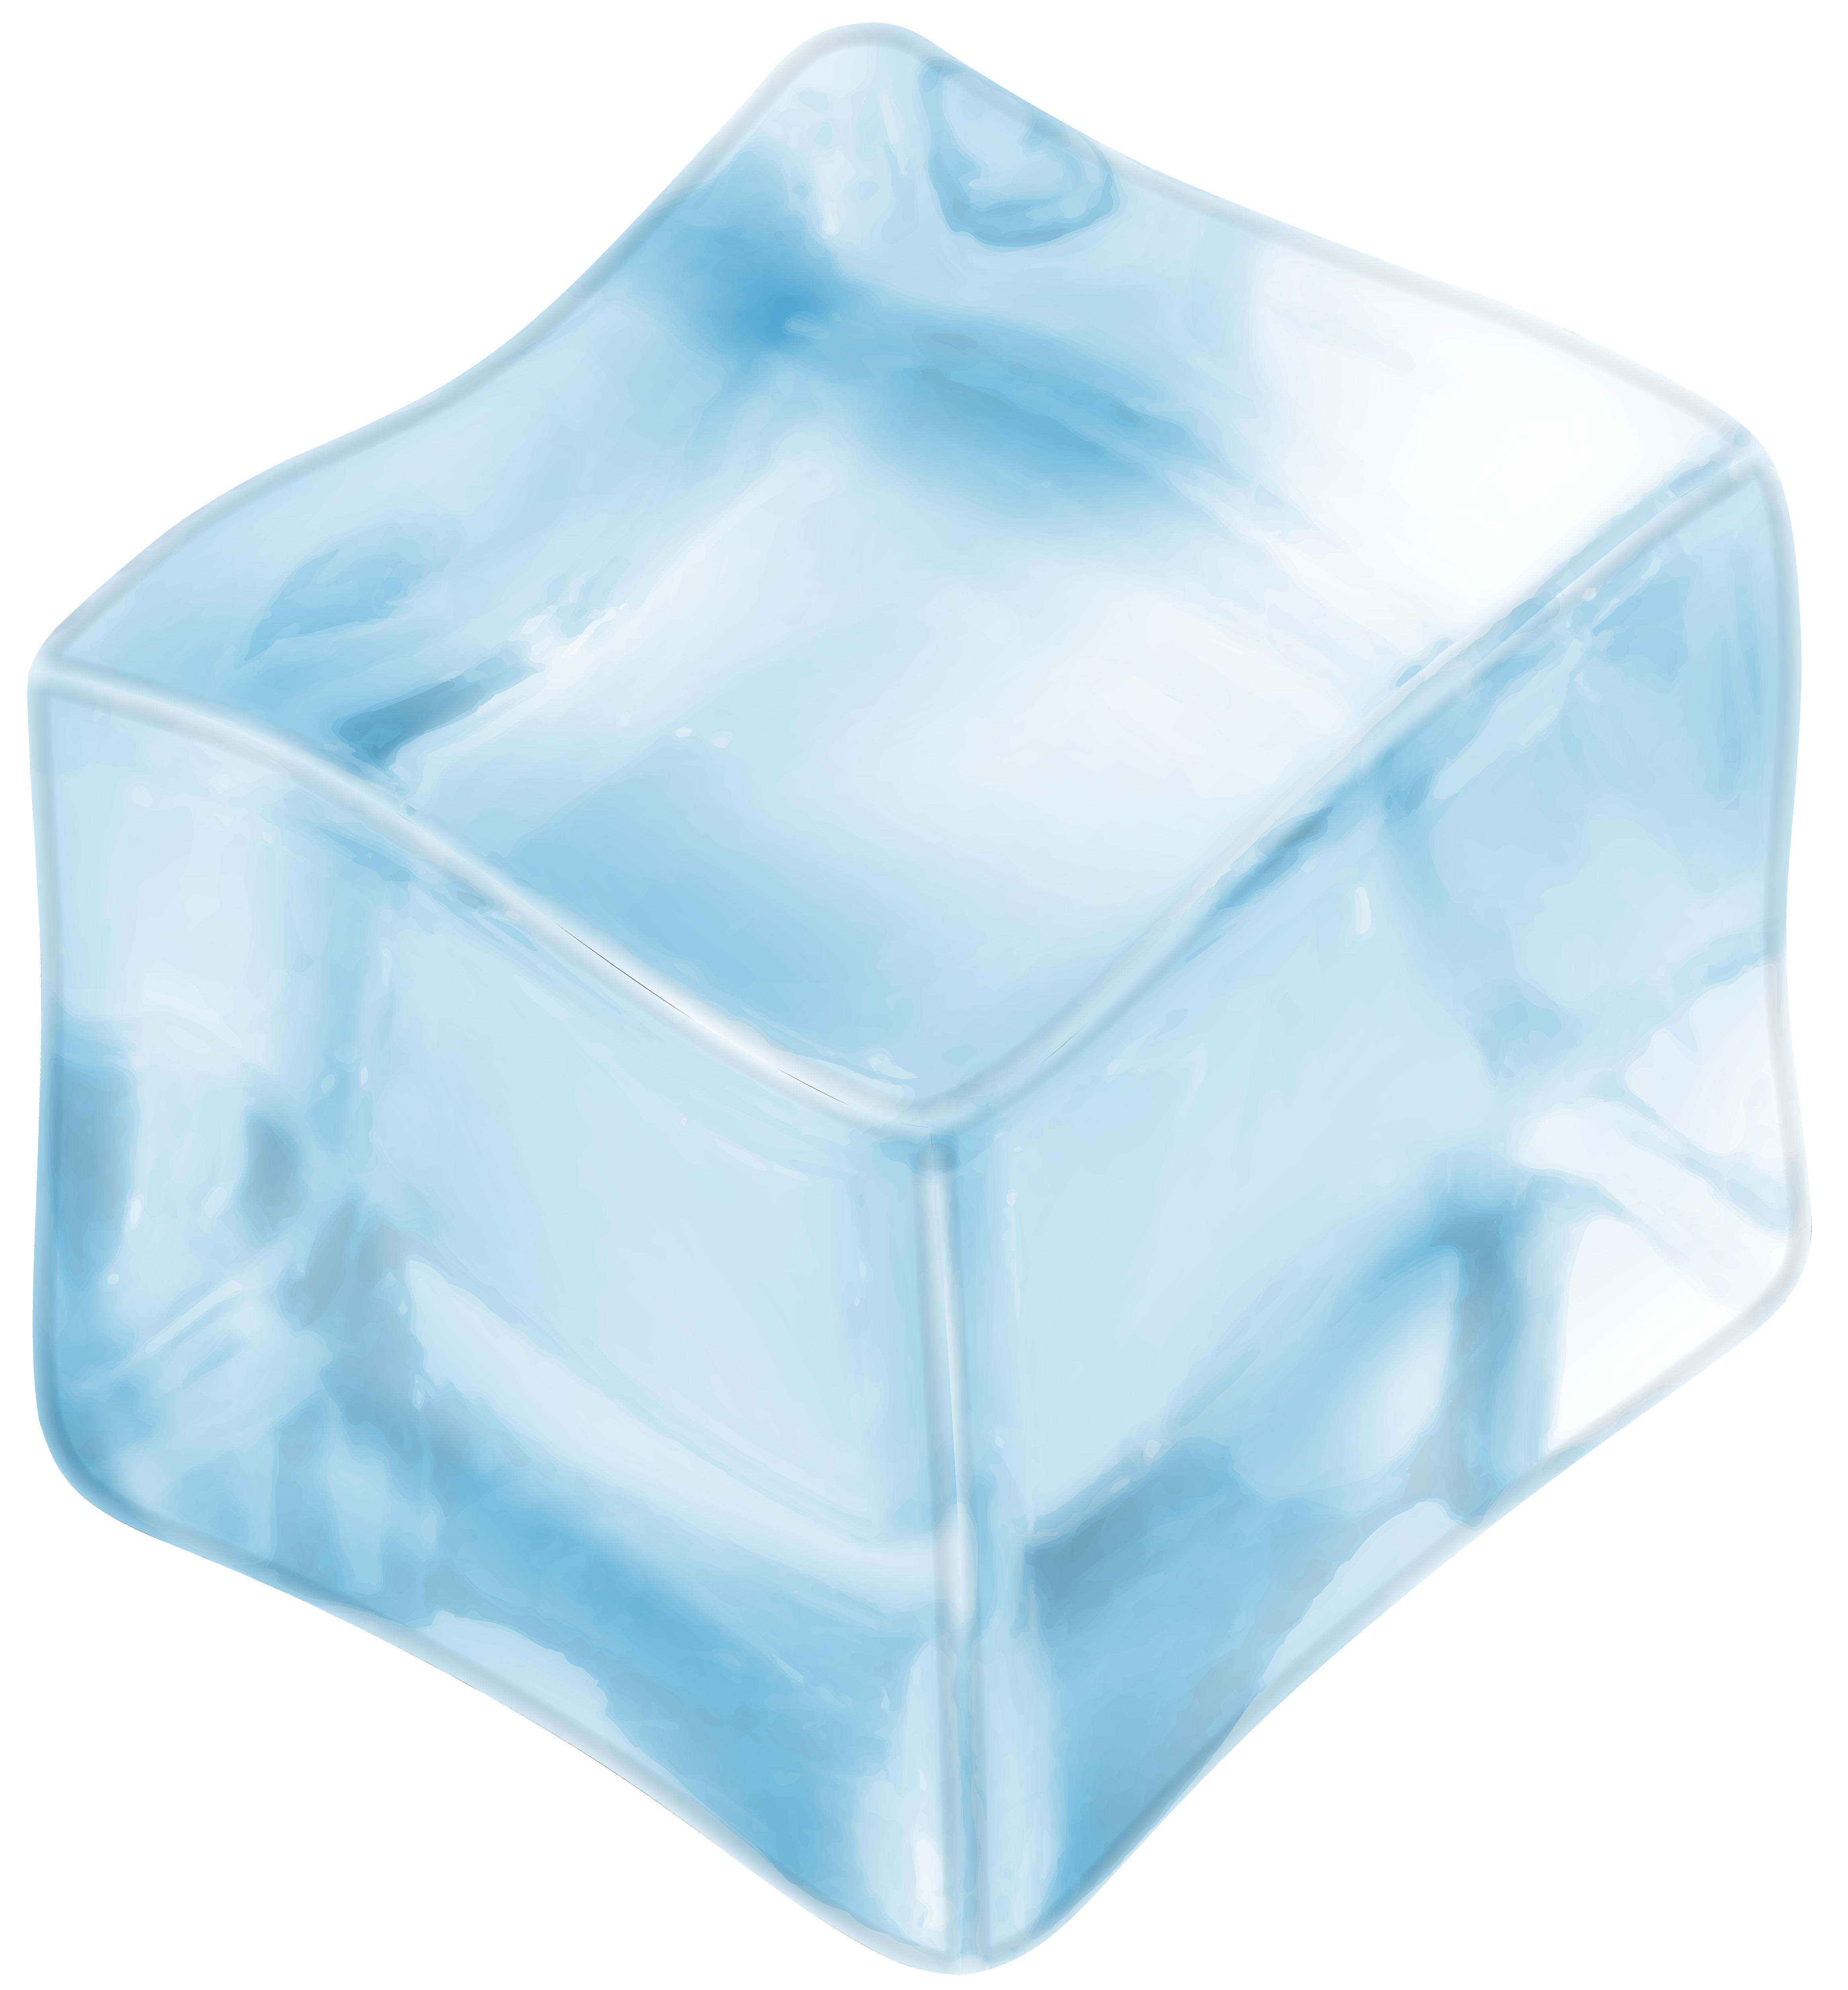 Ice clipart. Cube png clipar best graphic free download